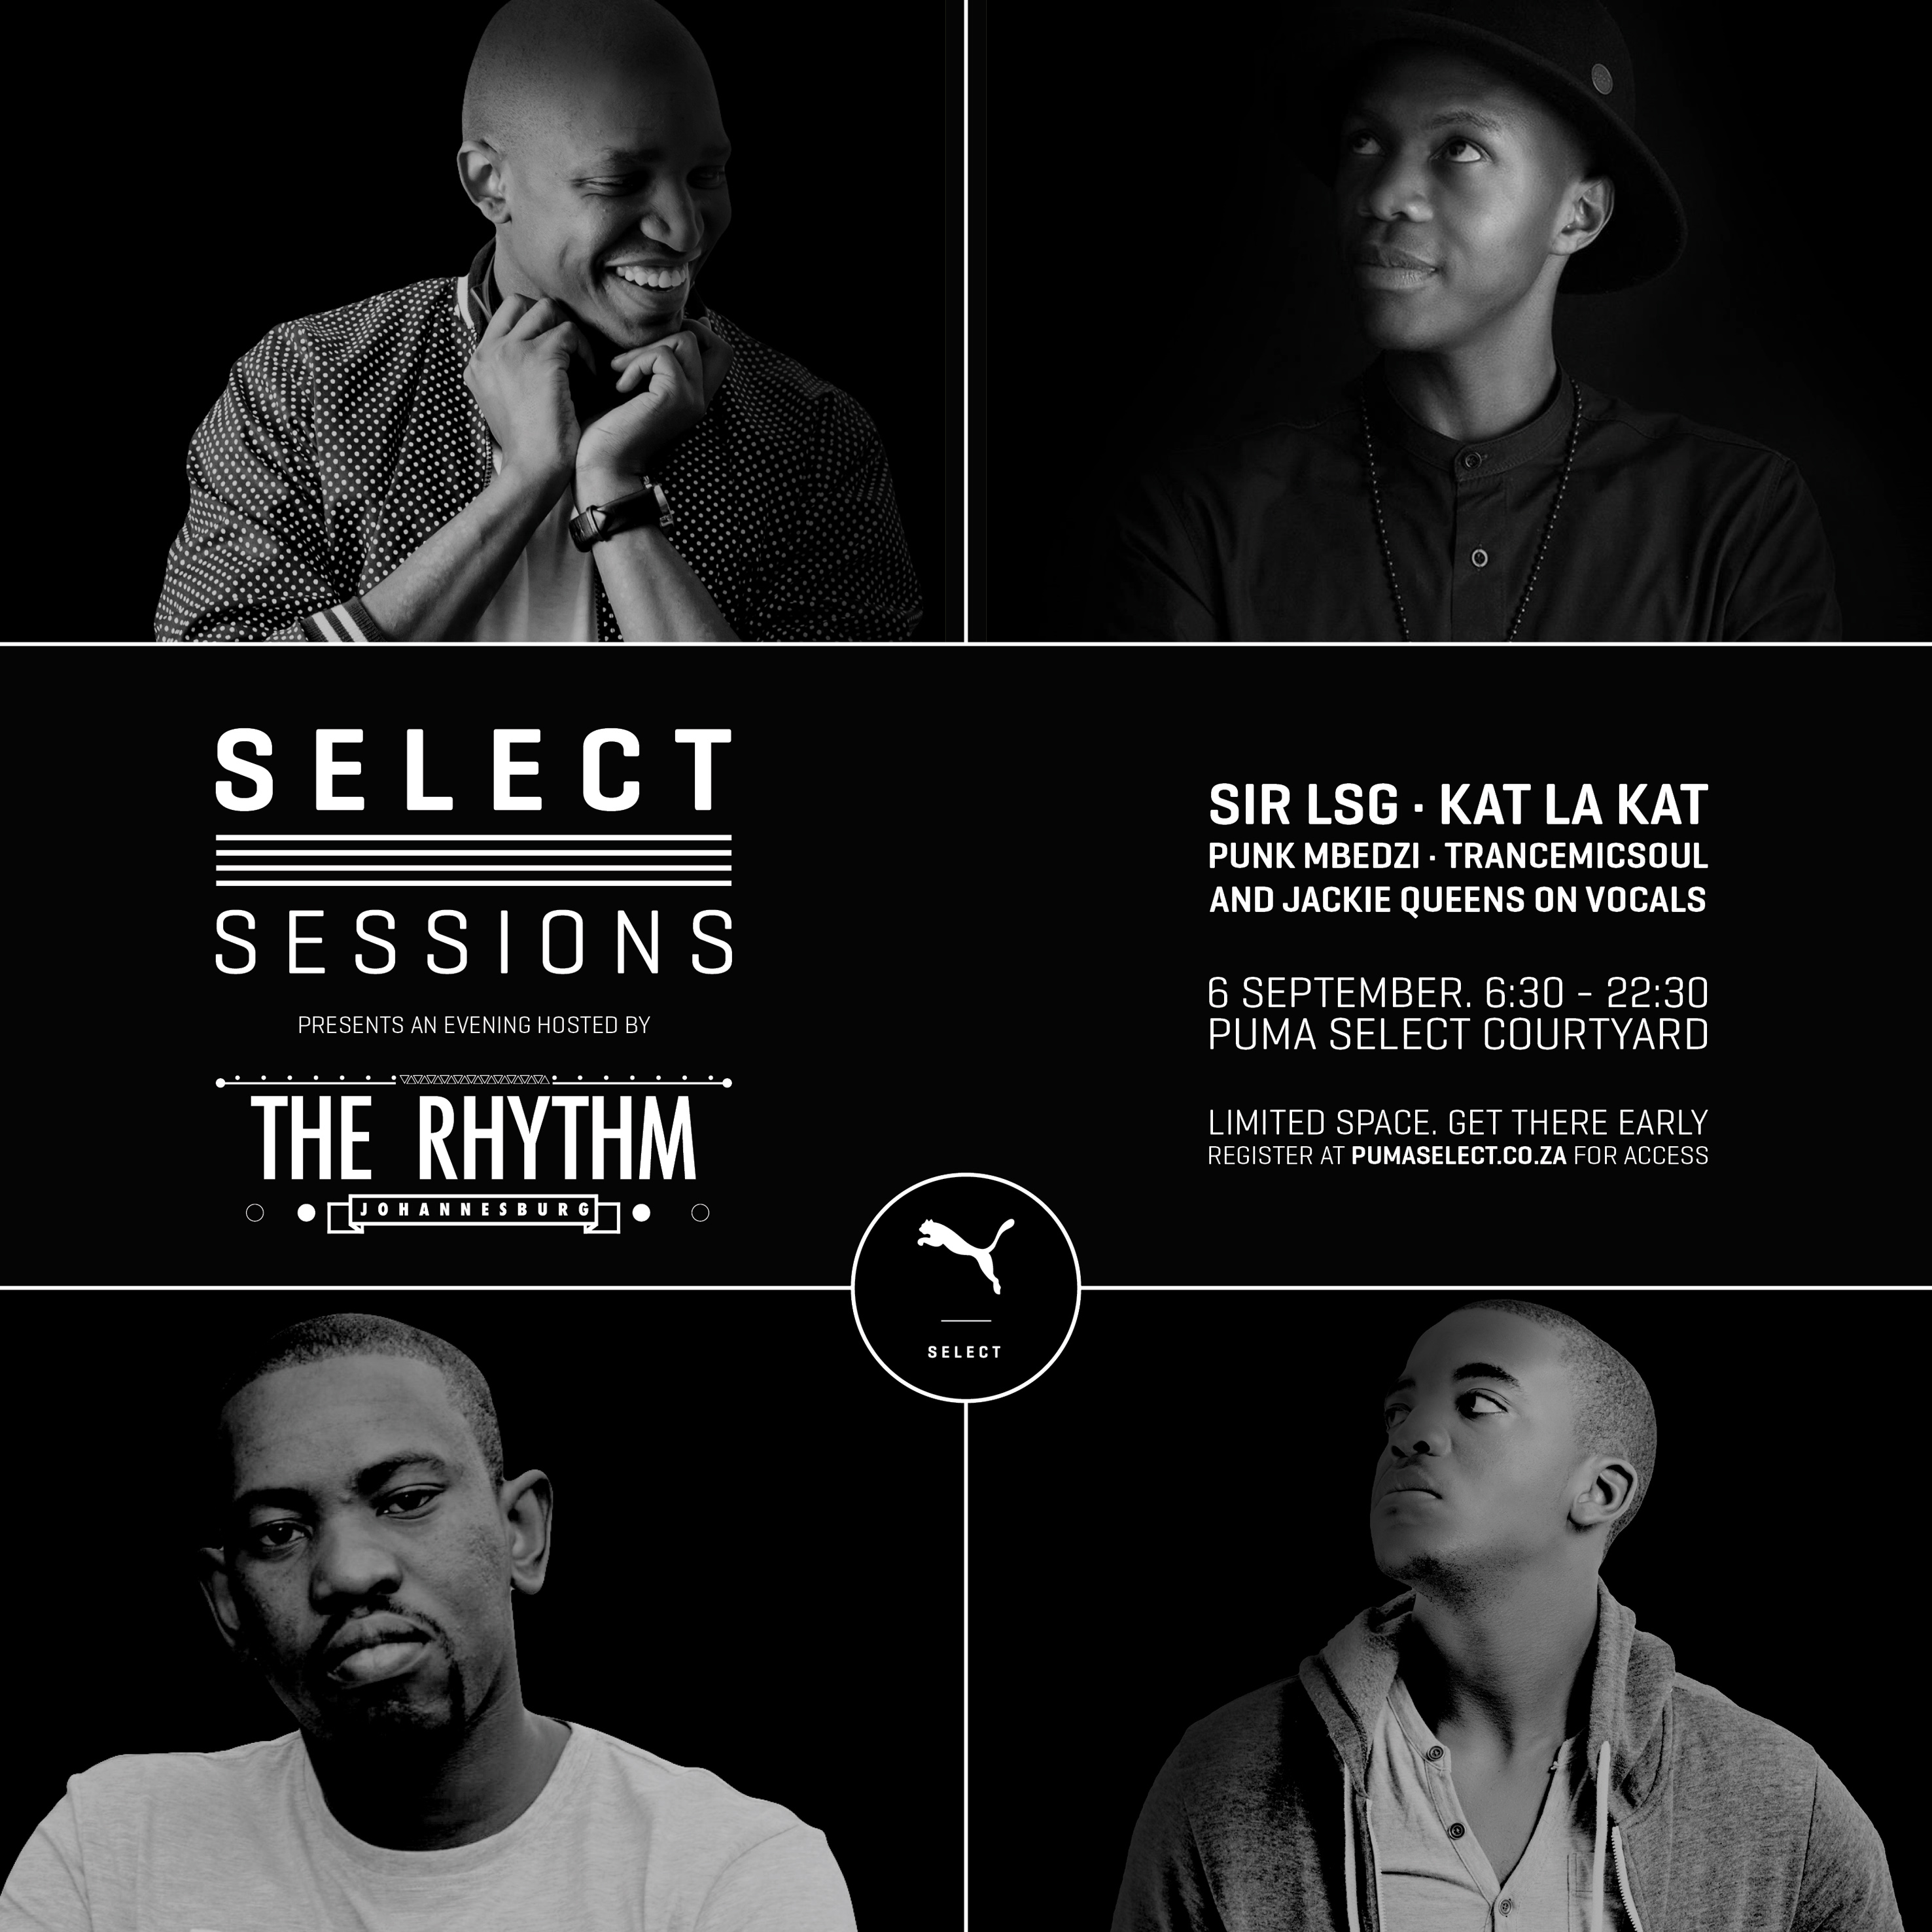 PUMA Select Sessions Presents an Evening Hosted by The Rhythm